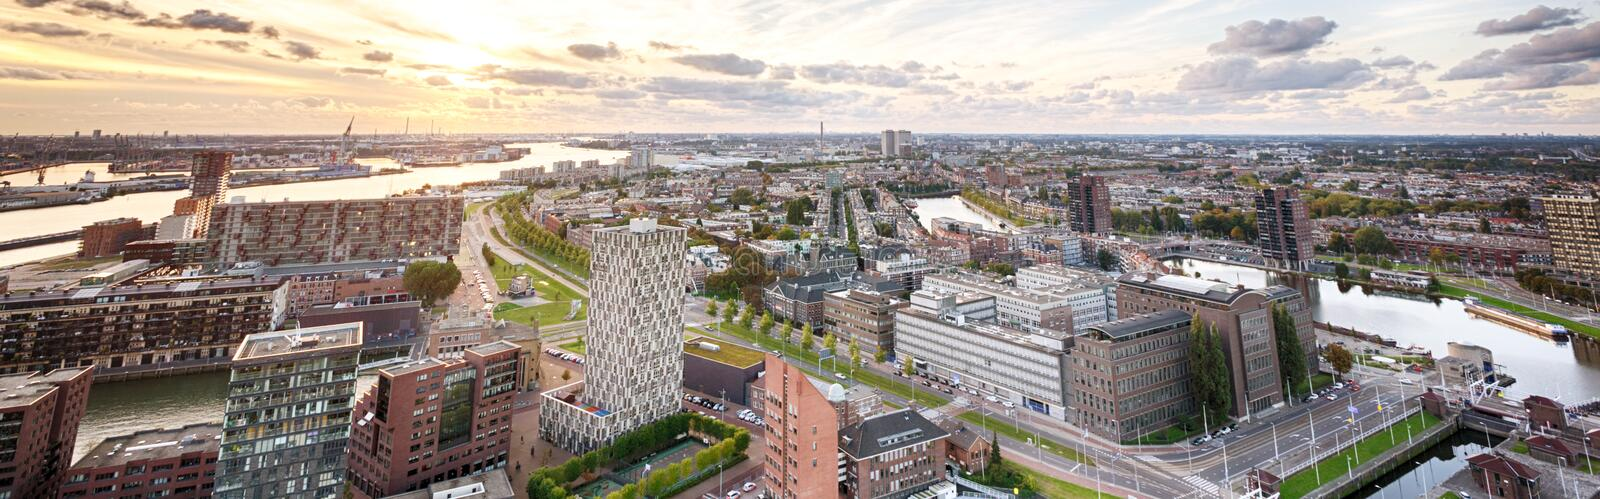 The City of Rotterdam, the Netherlands stock photo